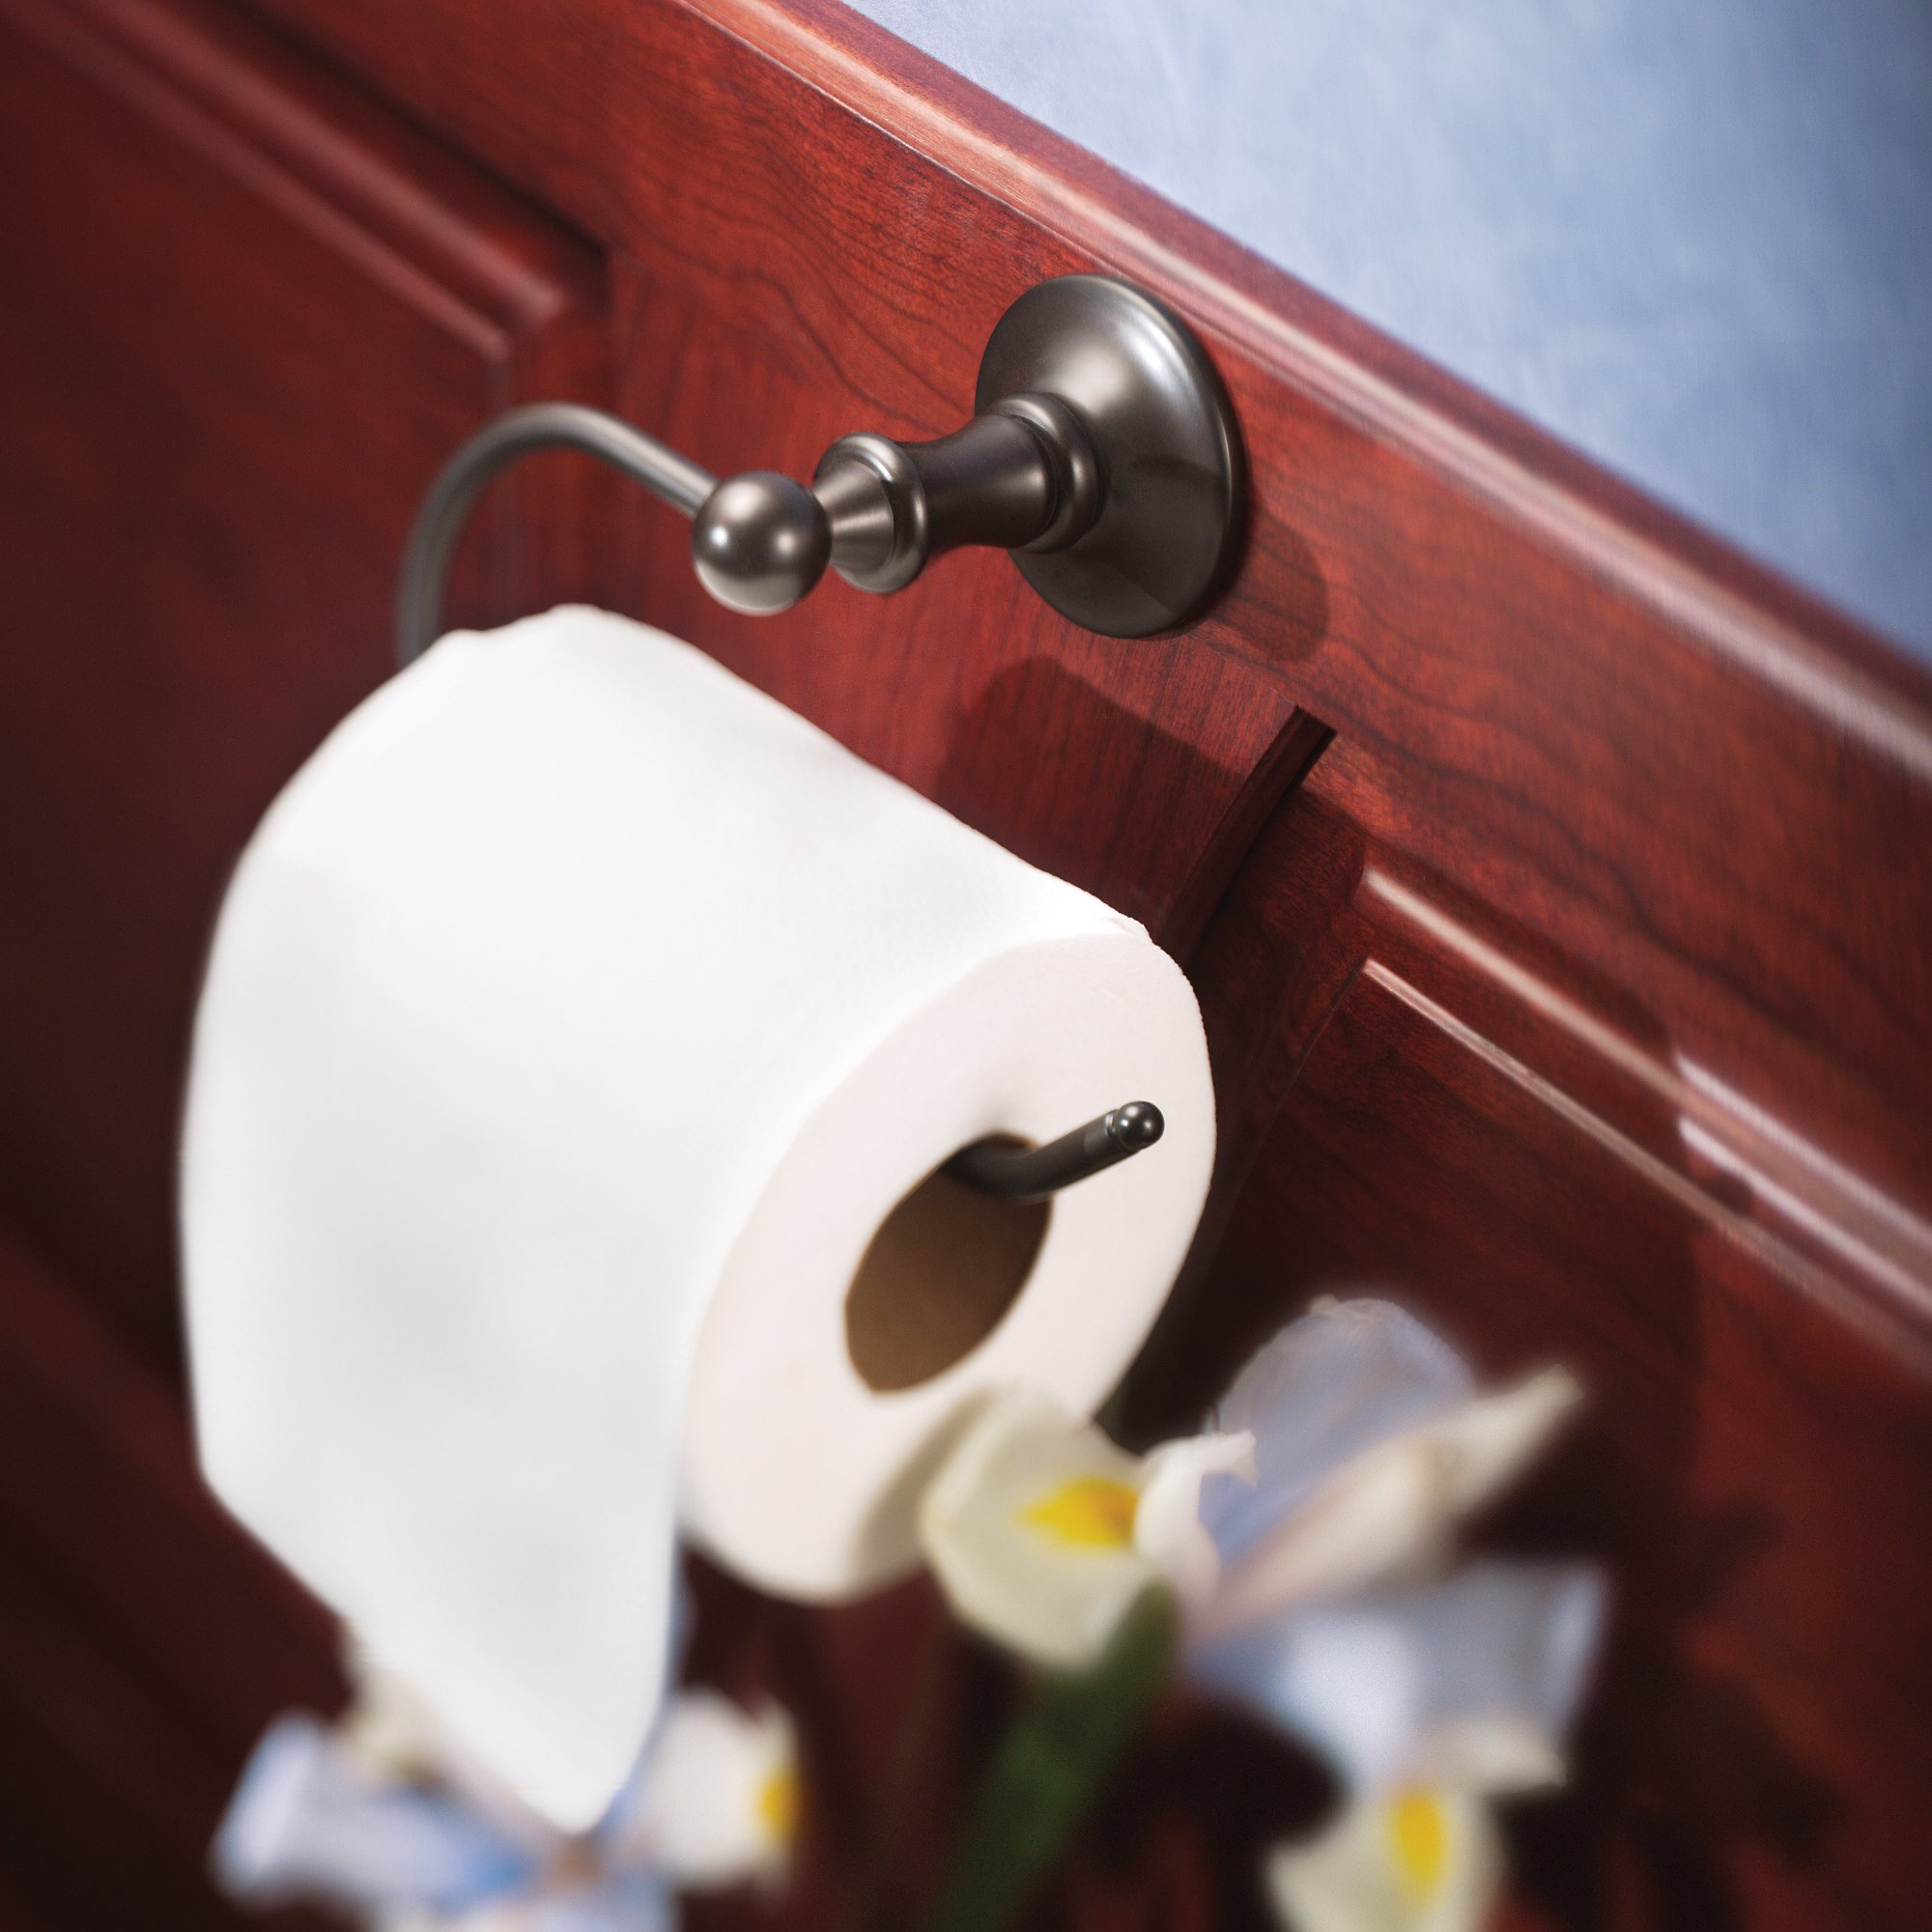 Moen DN6708ORB Danbury Toilet Paper Holder, Oil-Rubbed Bronze